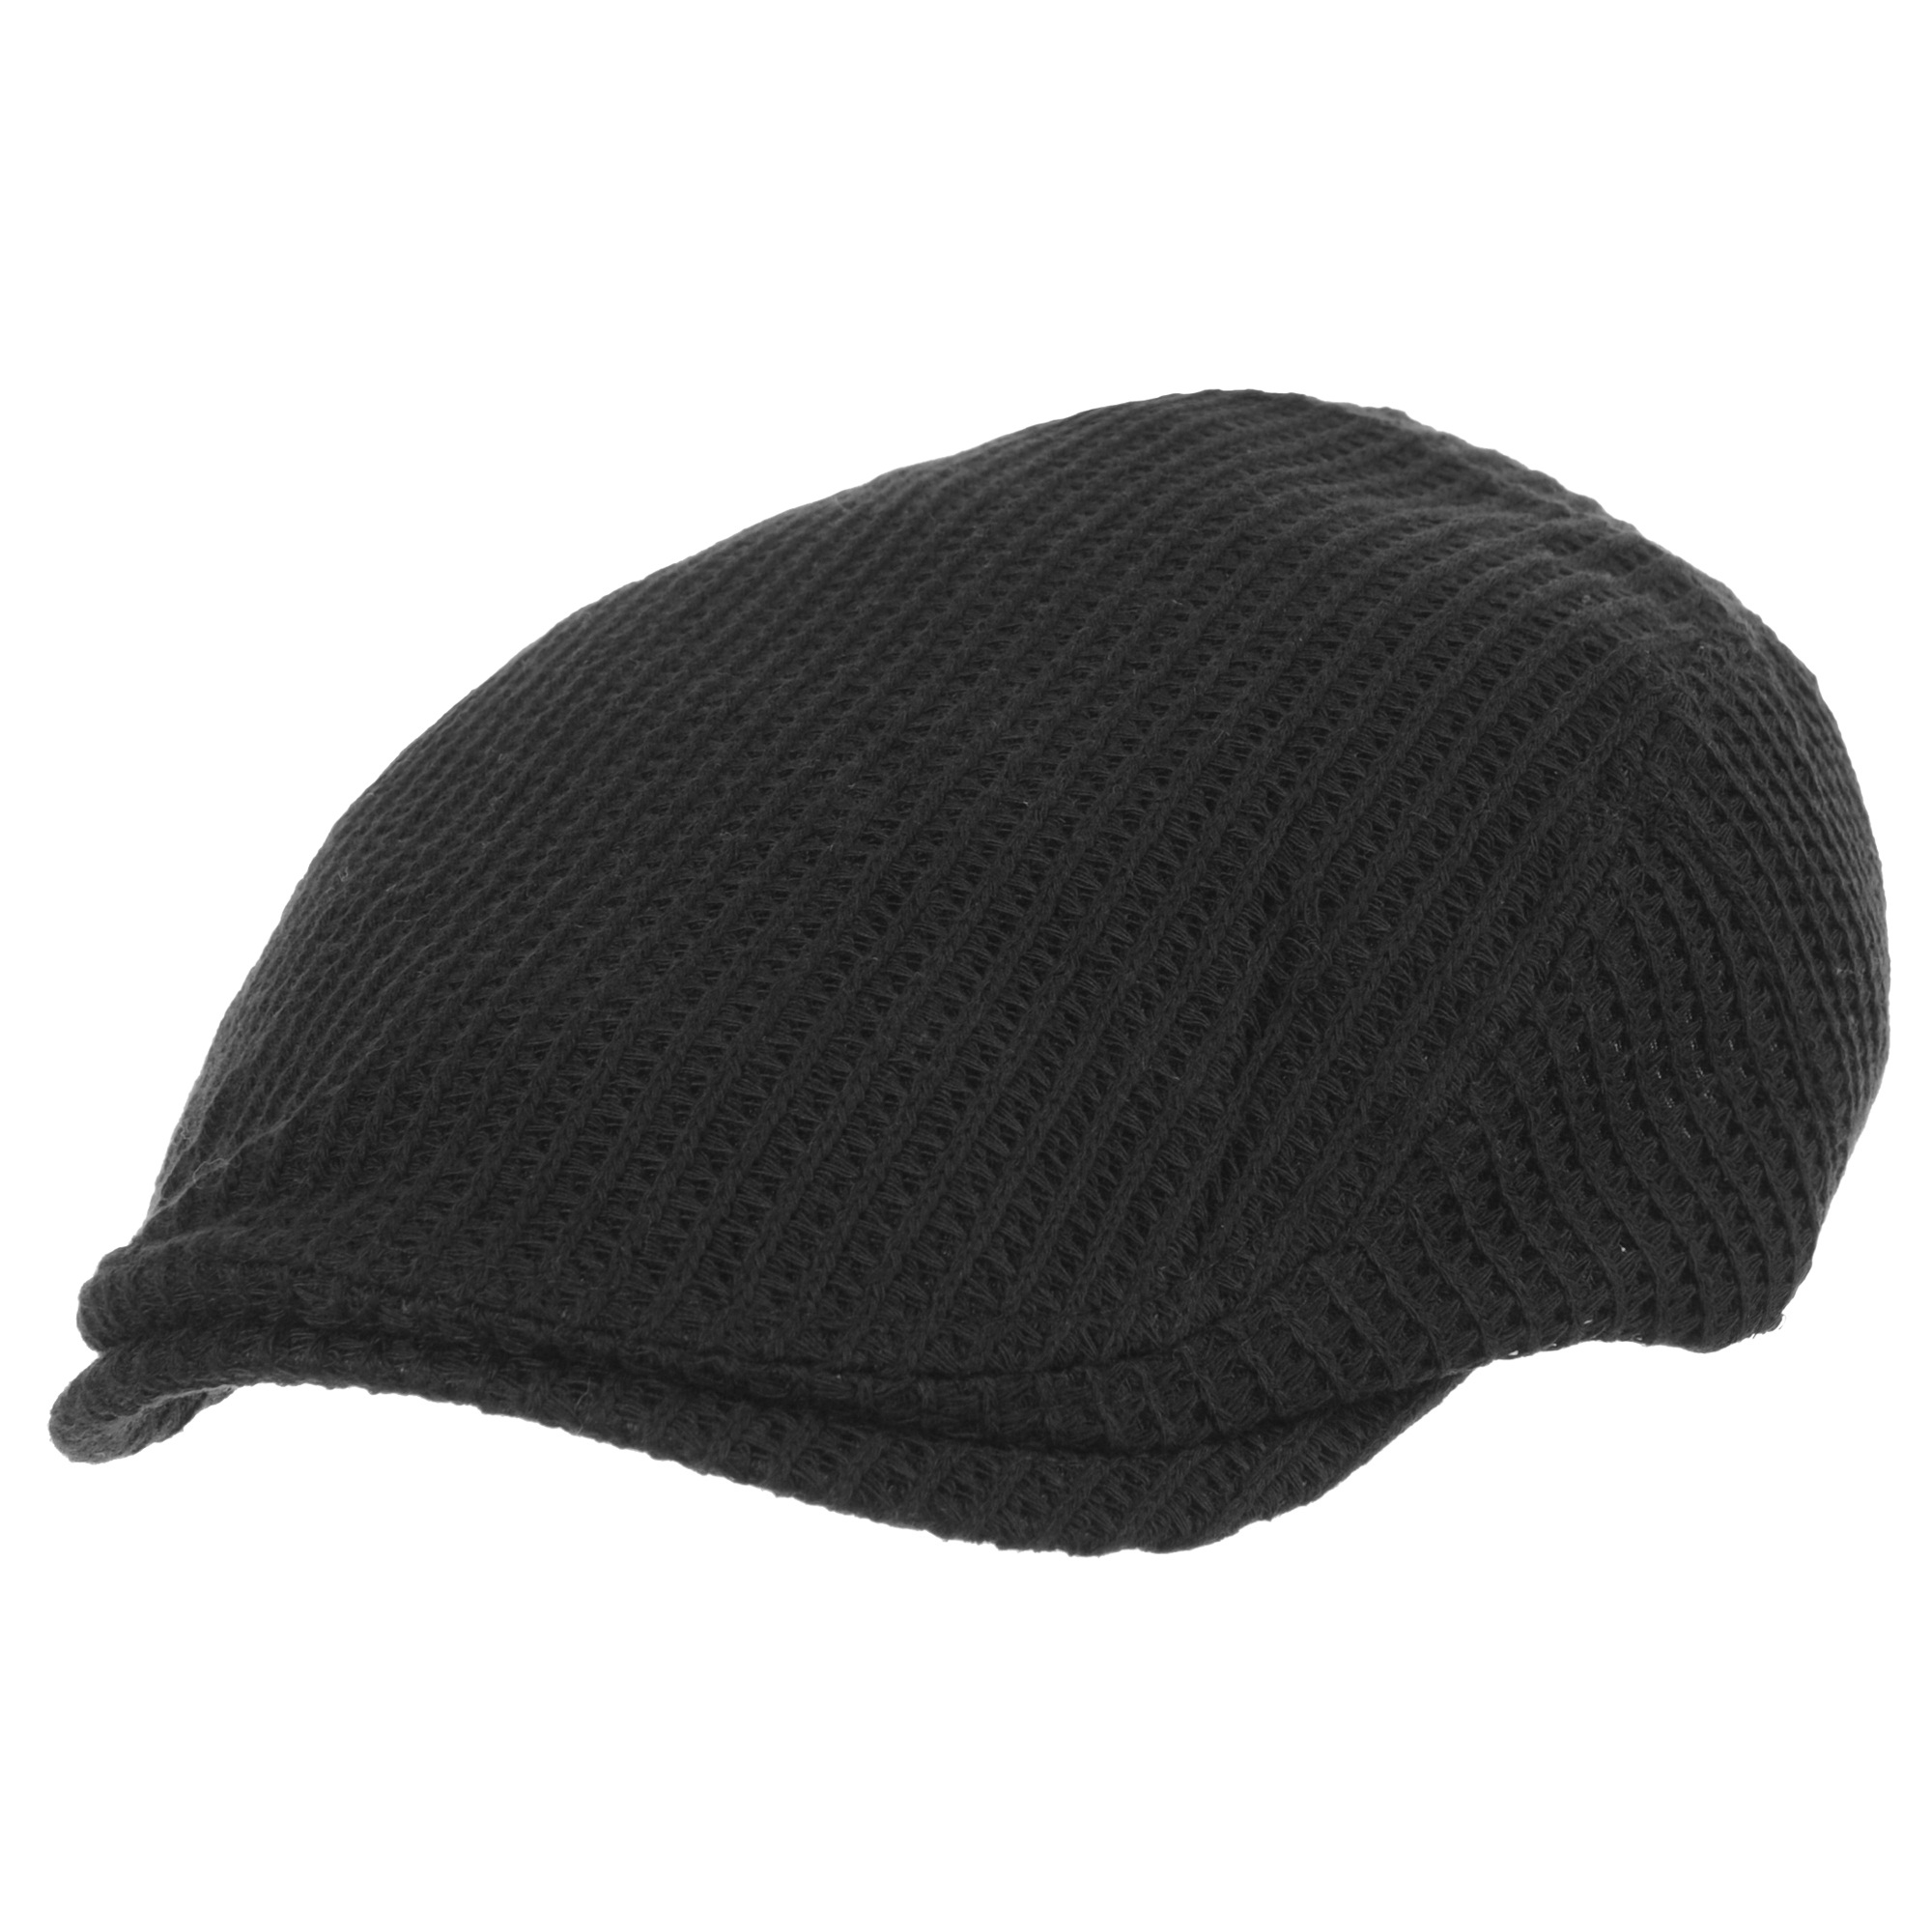 Knitted Ivy Cap